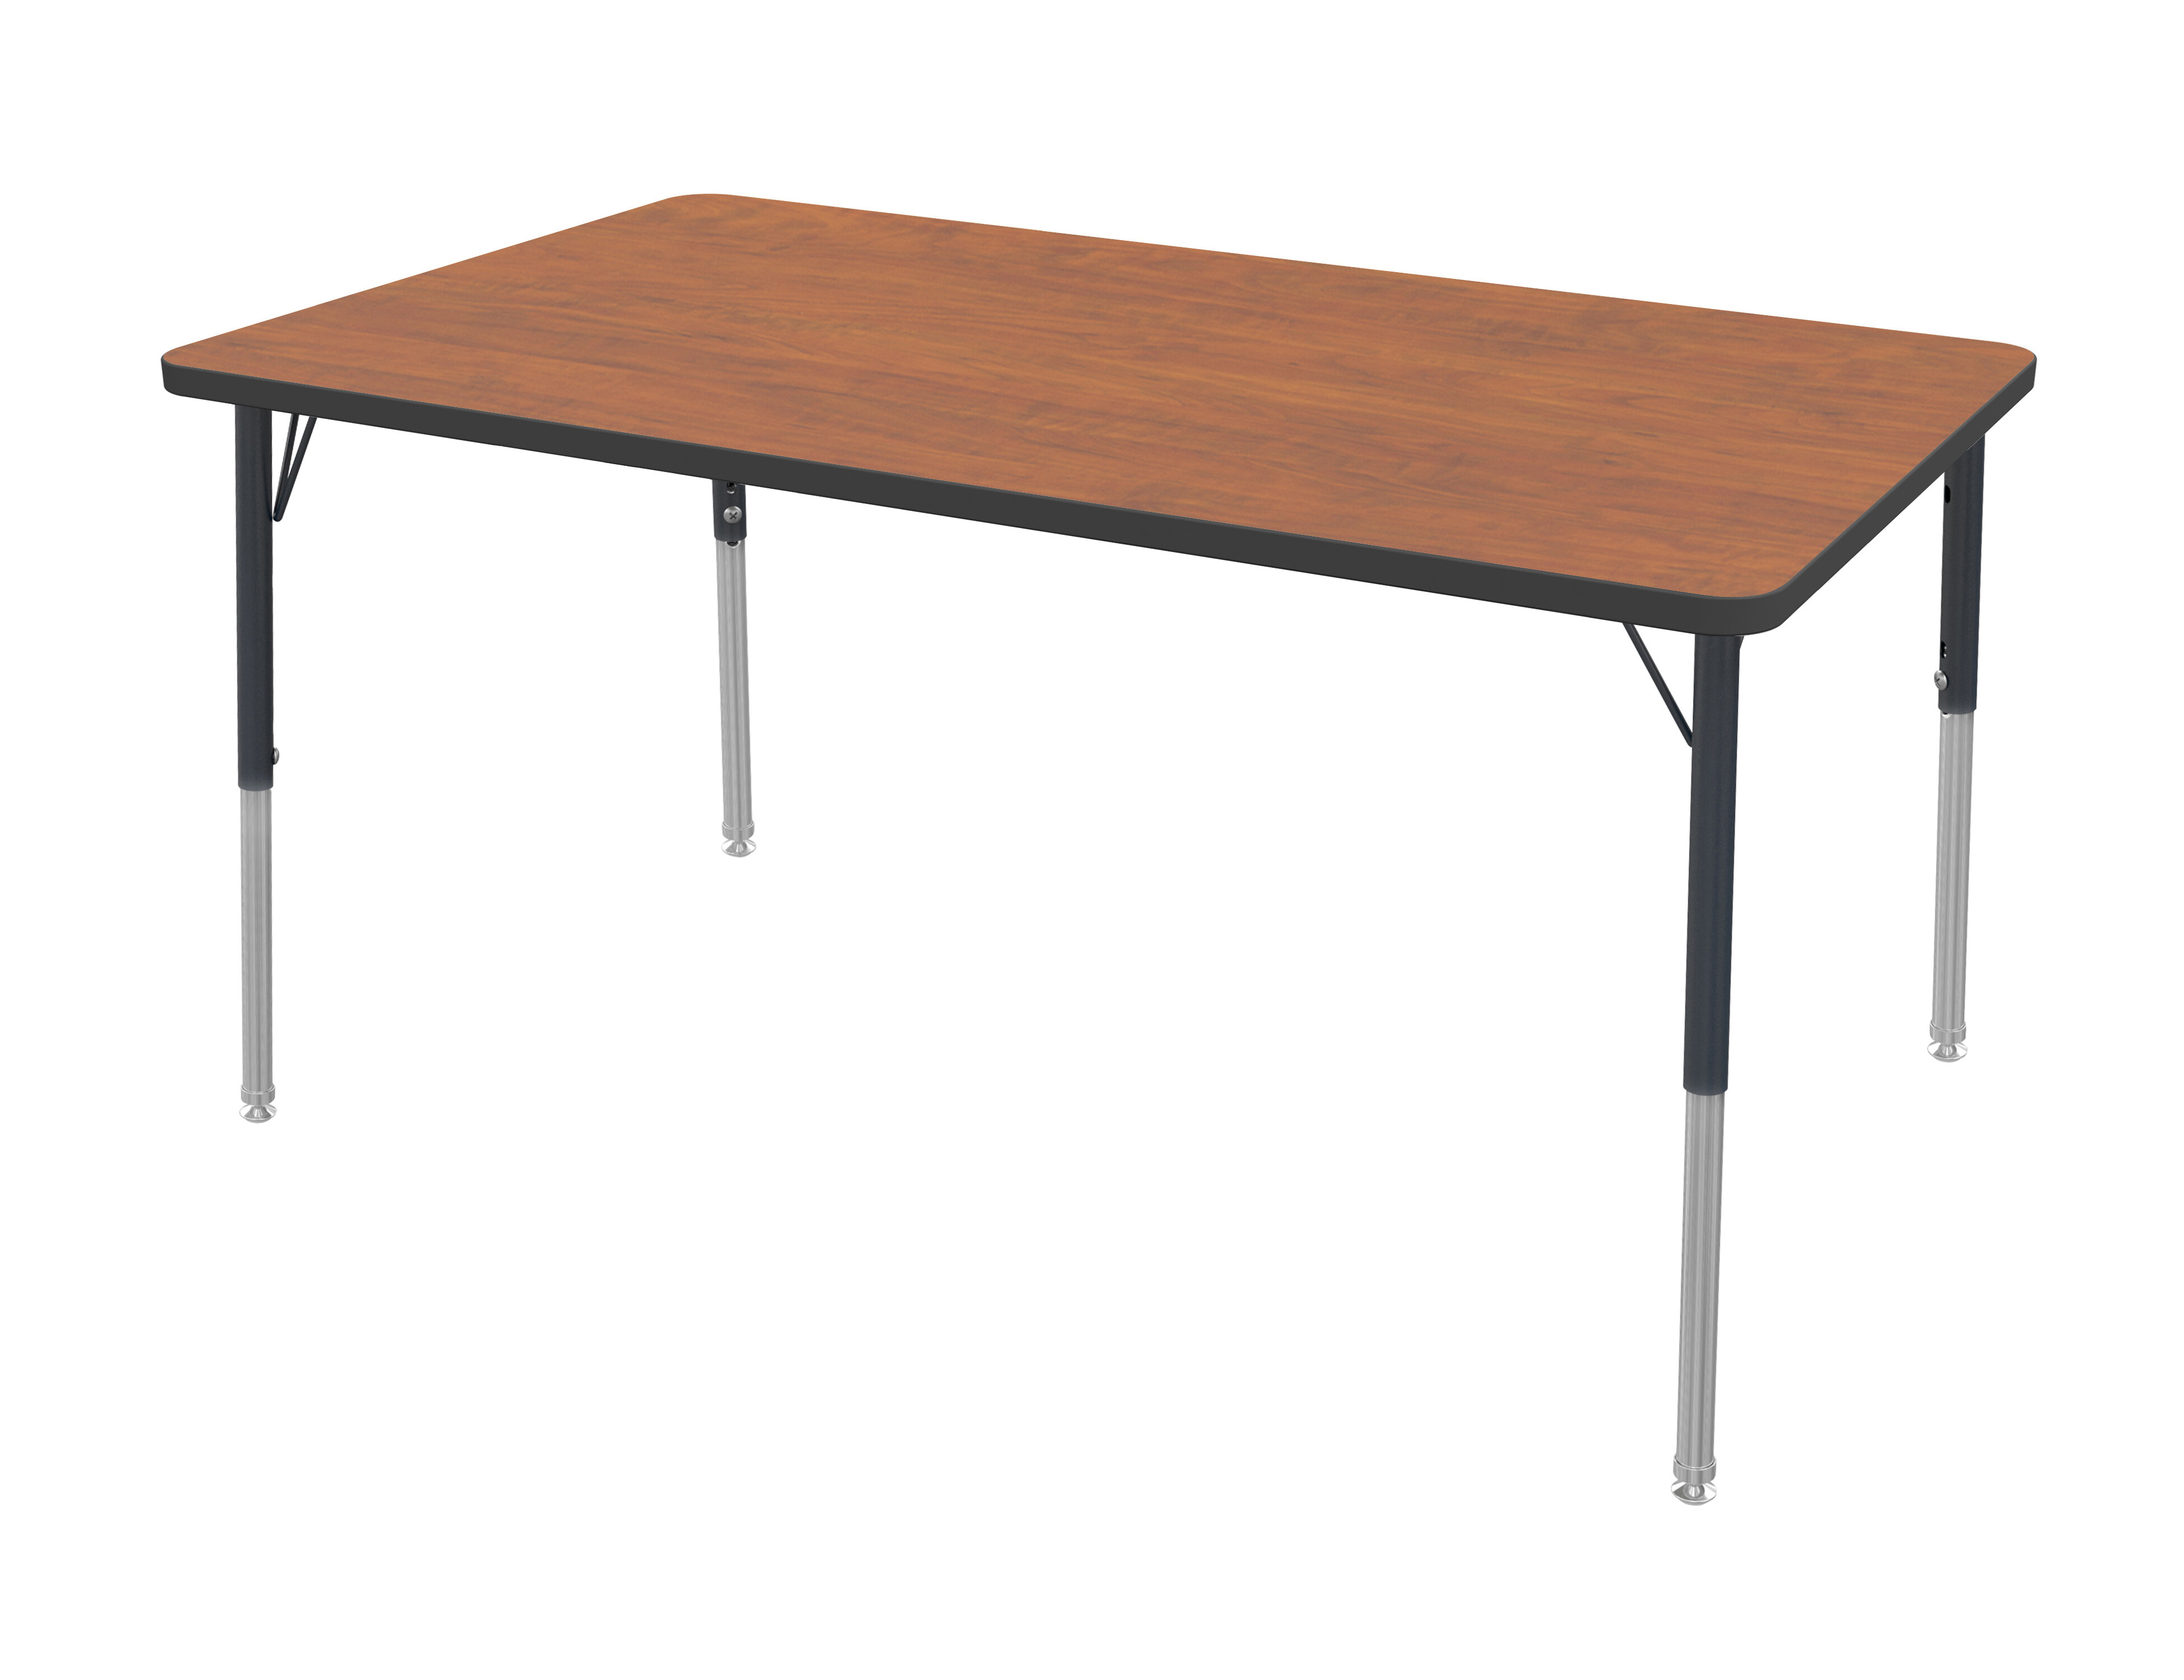 Marco group 72 x 36 rectangular activity table wayfair for Dining room tables 36 x 72